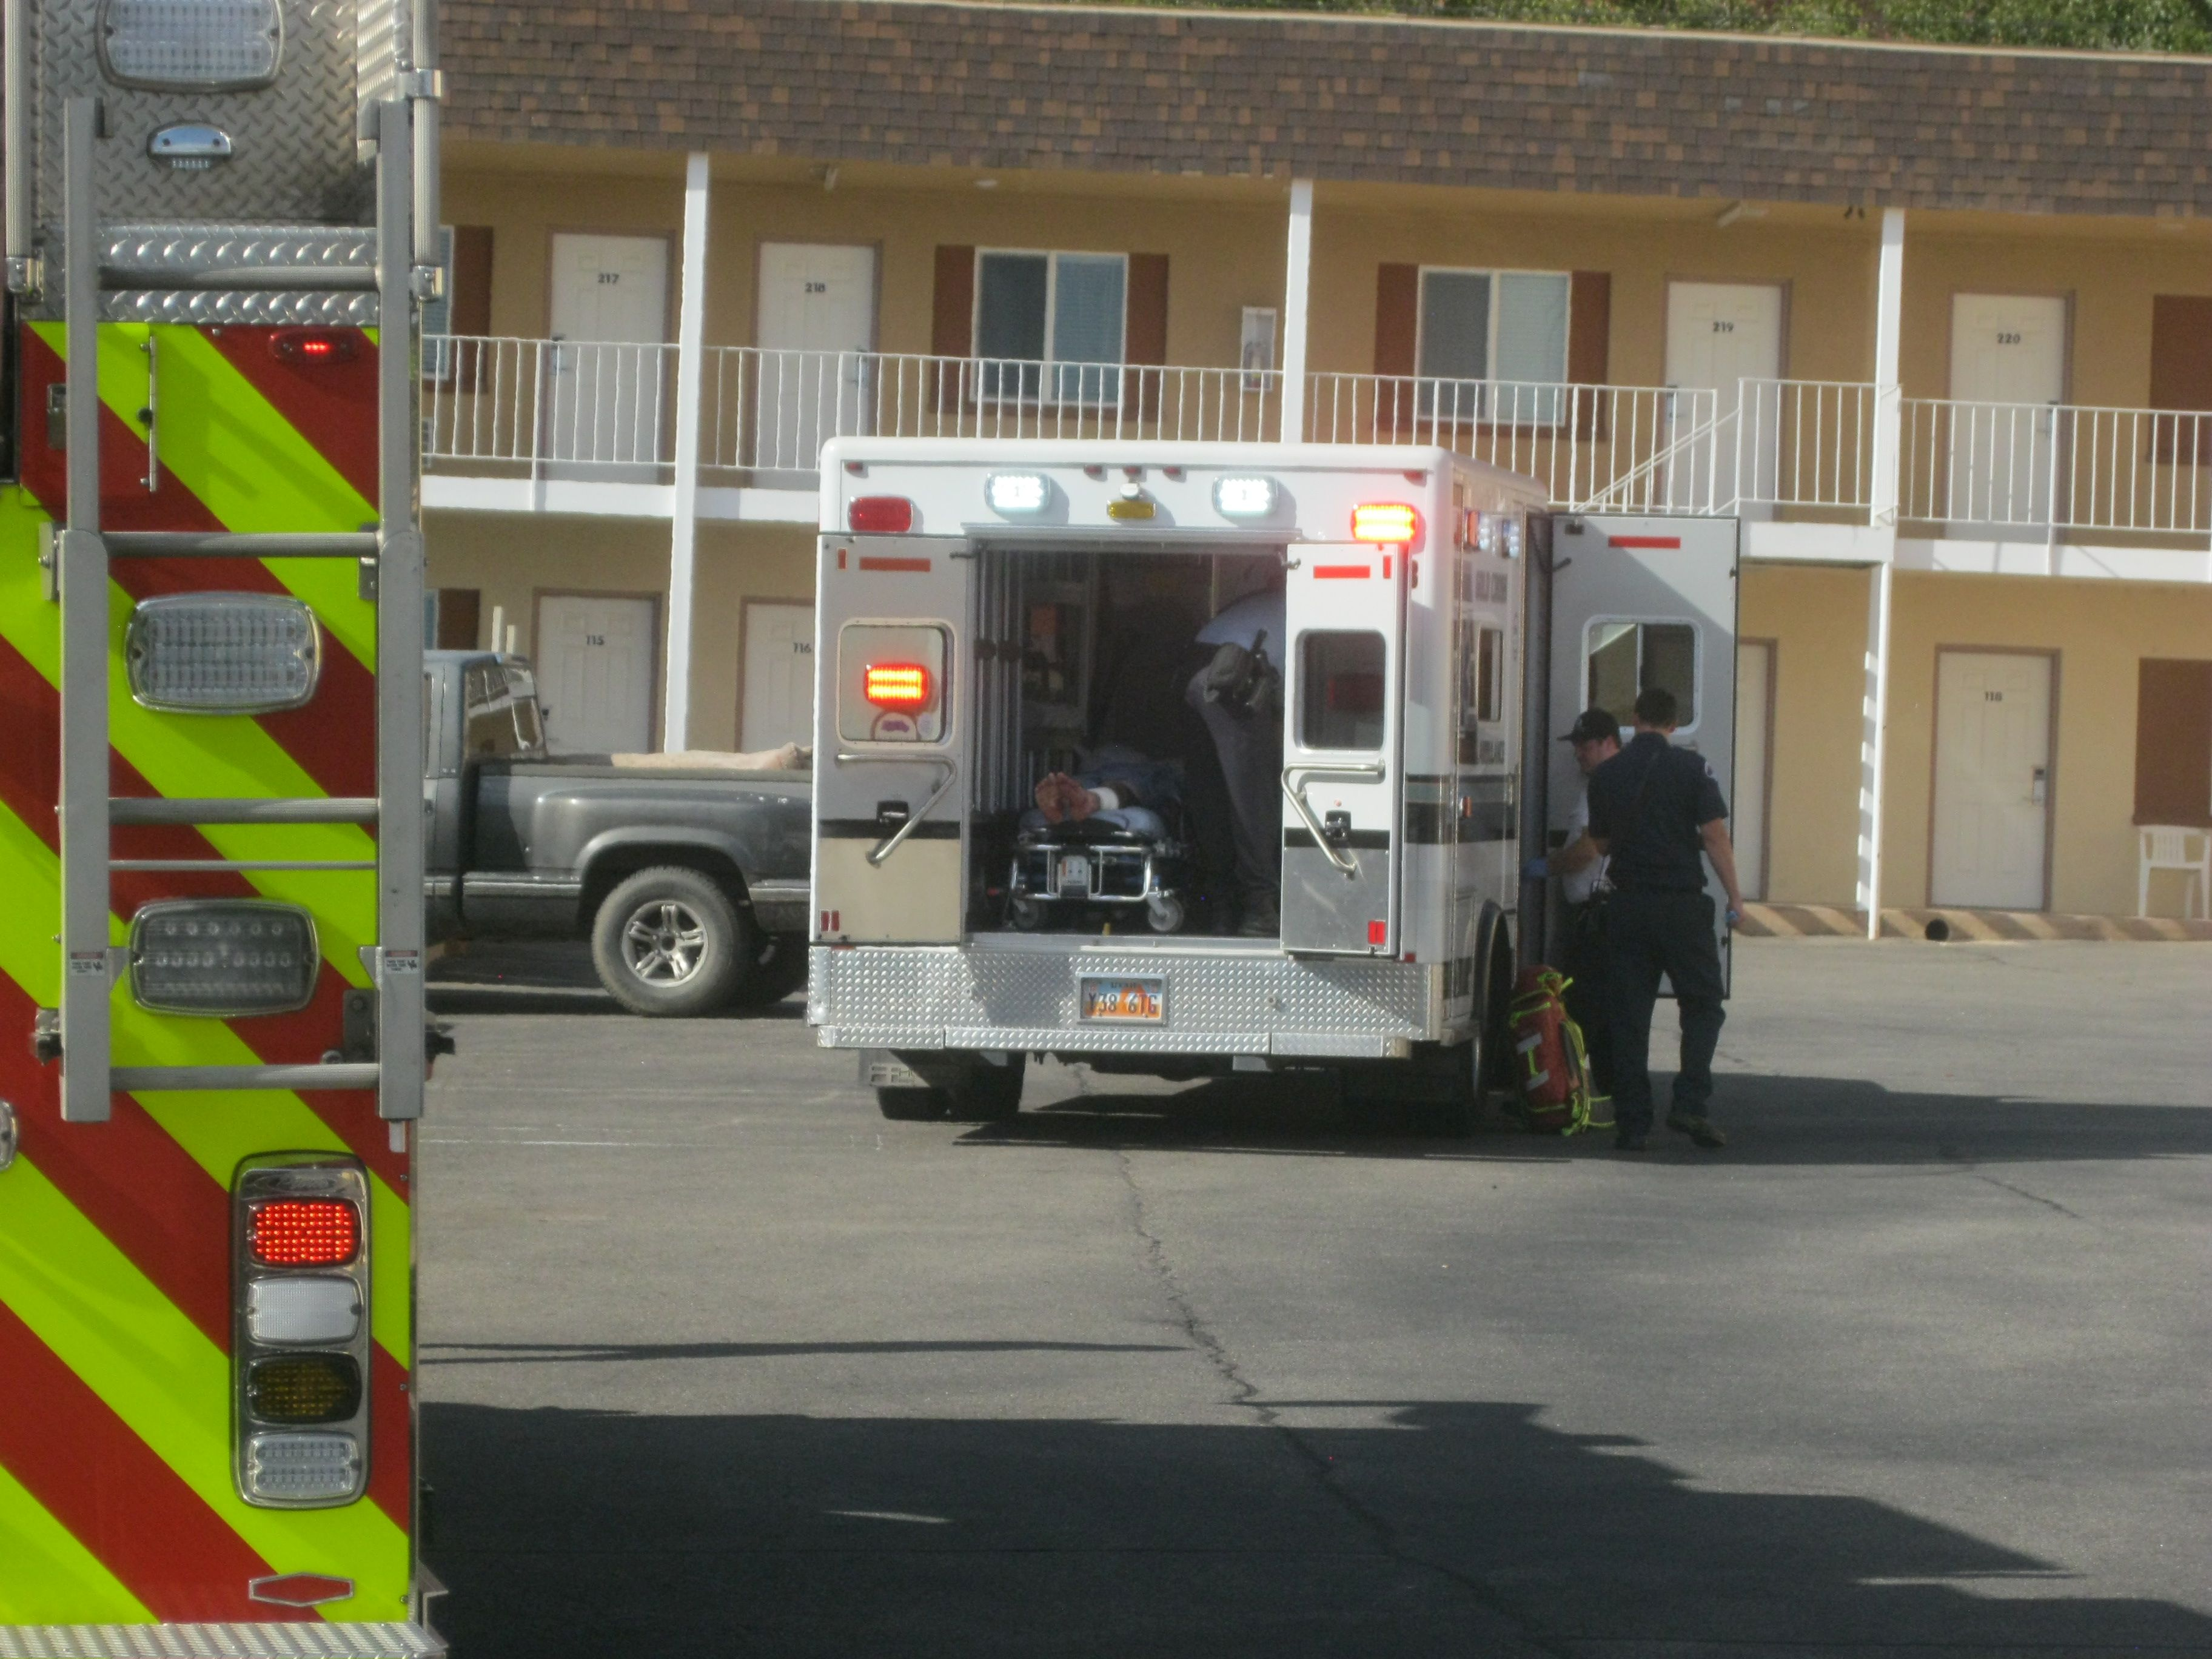 A man has been taken to Dixie Regional Medical Center in St. George after leaving his hotel room naked and bleeding. St. George, Utah, Aug. 31, 2016 | Photo by Ric Wayman, St. George News